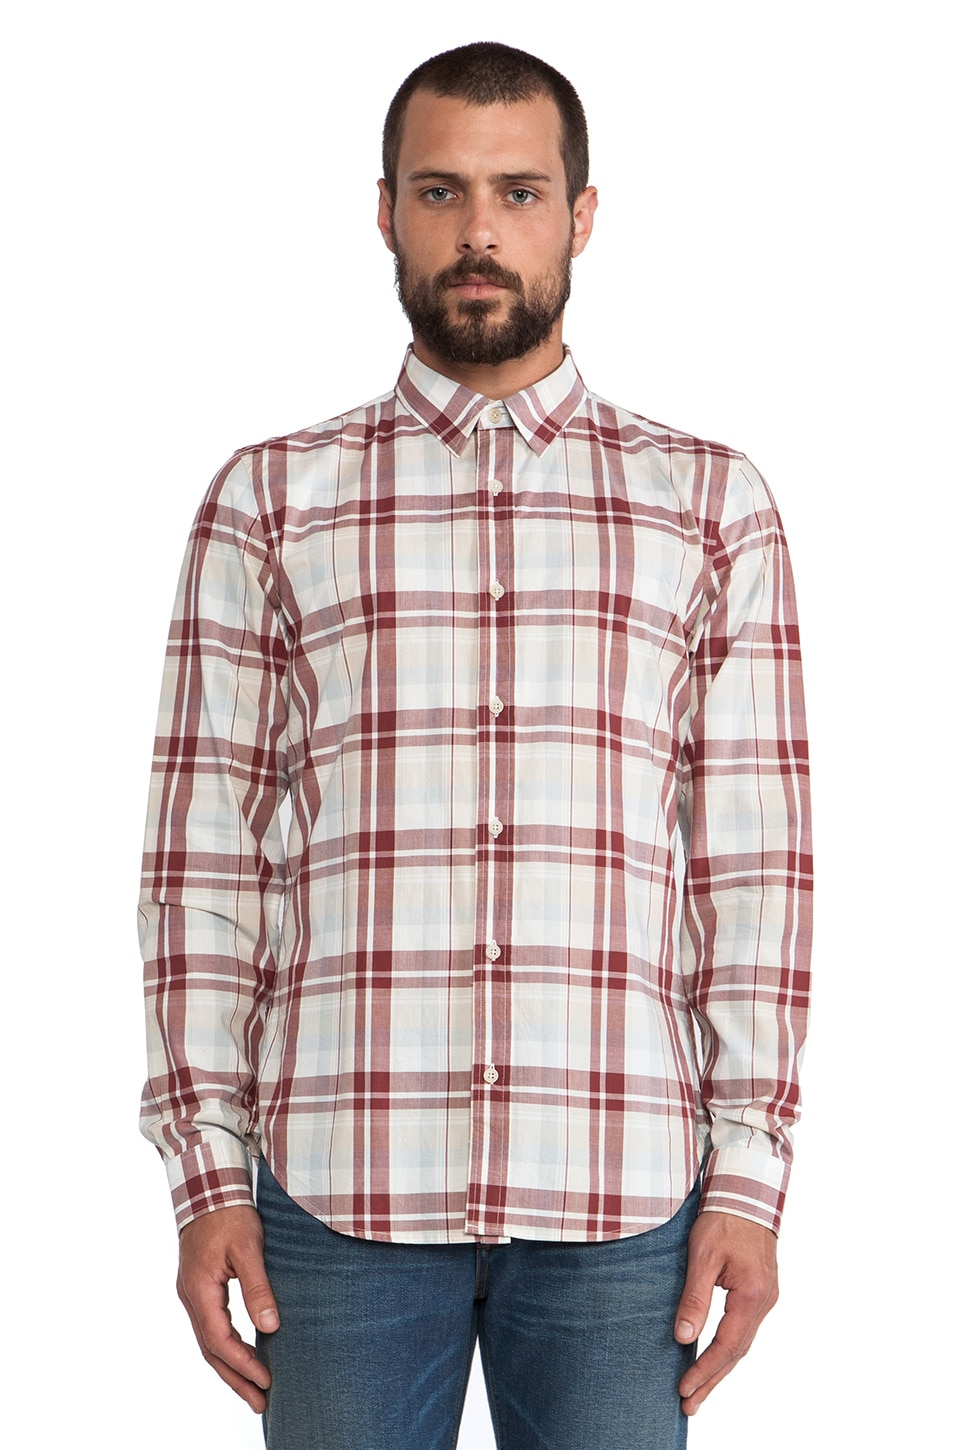 7 For All Mankind Oversized Plaid Button Up in Stone & Brick